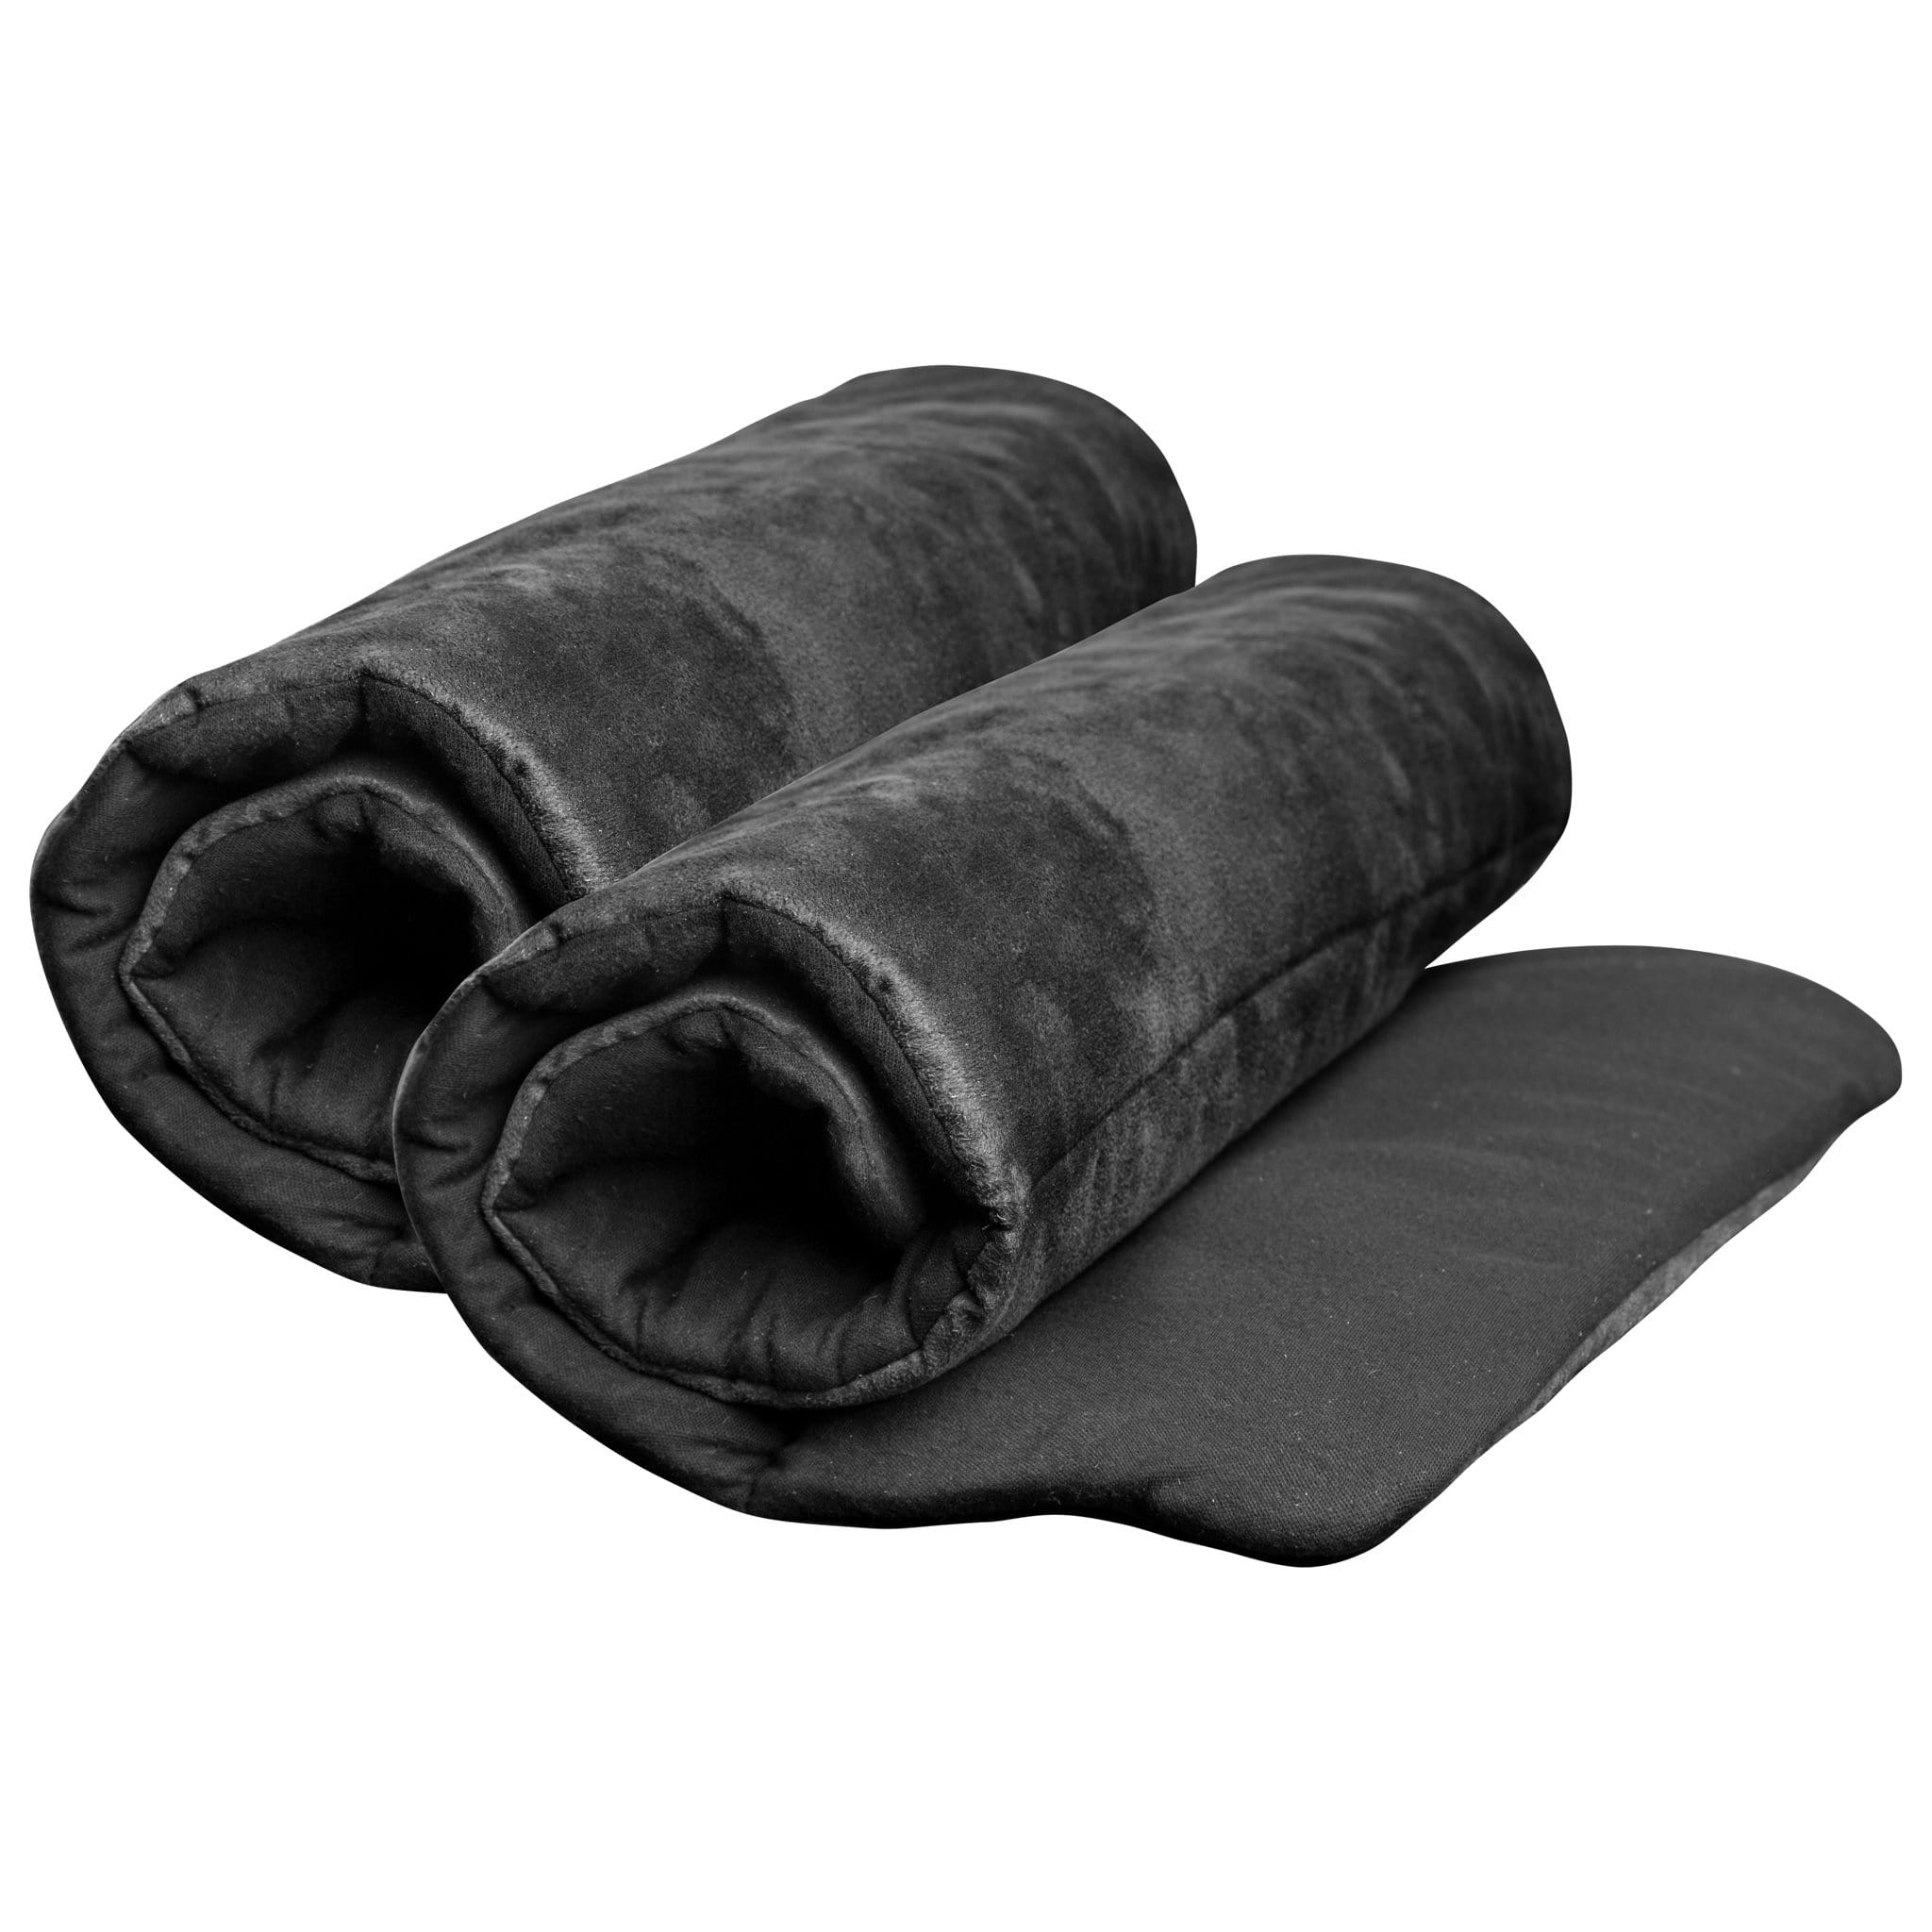 LeMieux Bamboo Pillow Wraps Black 8880